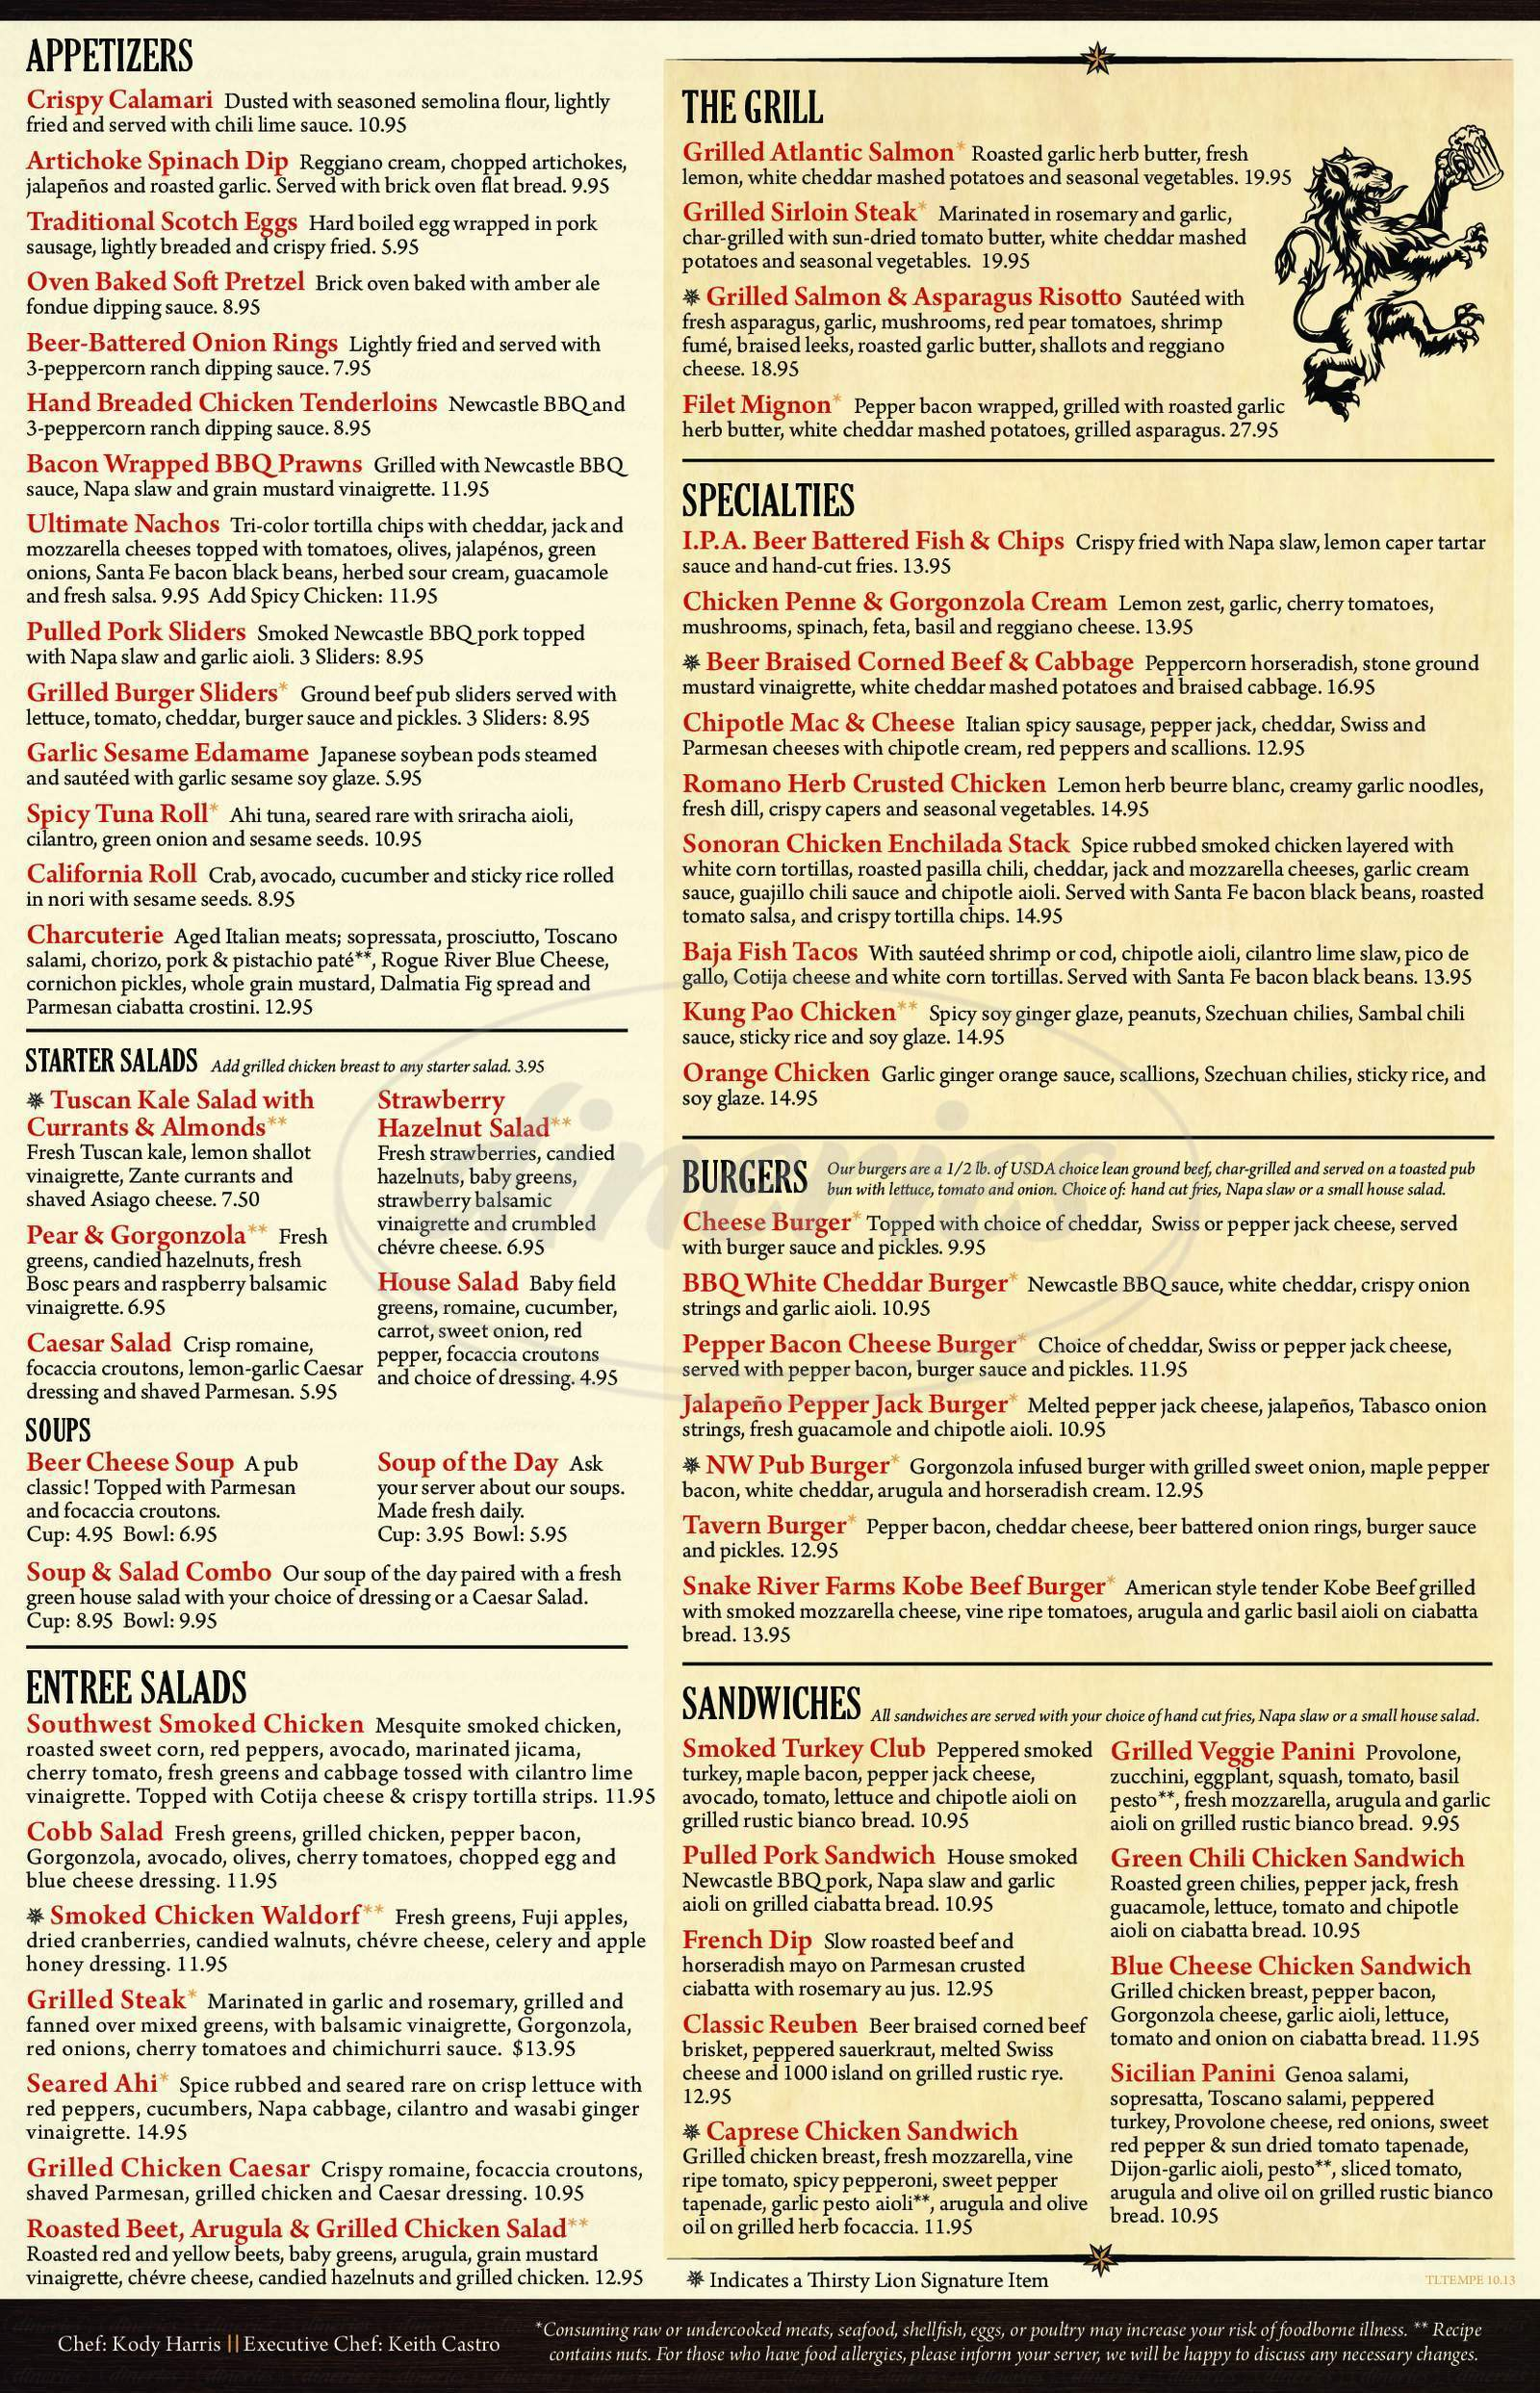 menu for Thirsty Lion Pub & Grill